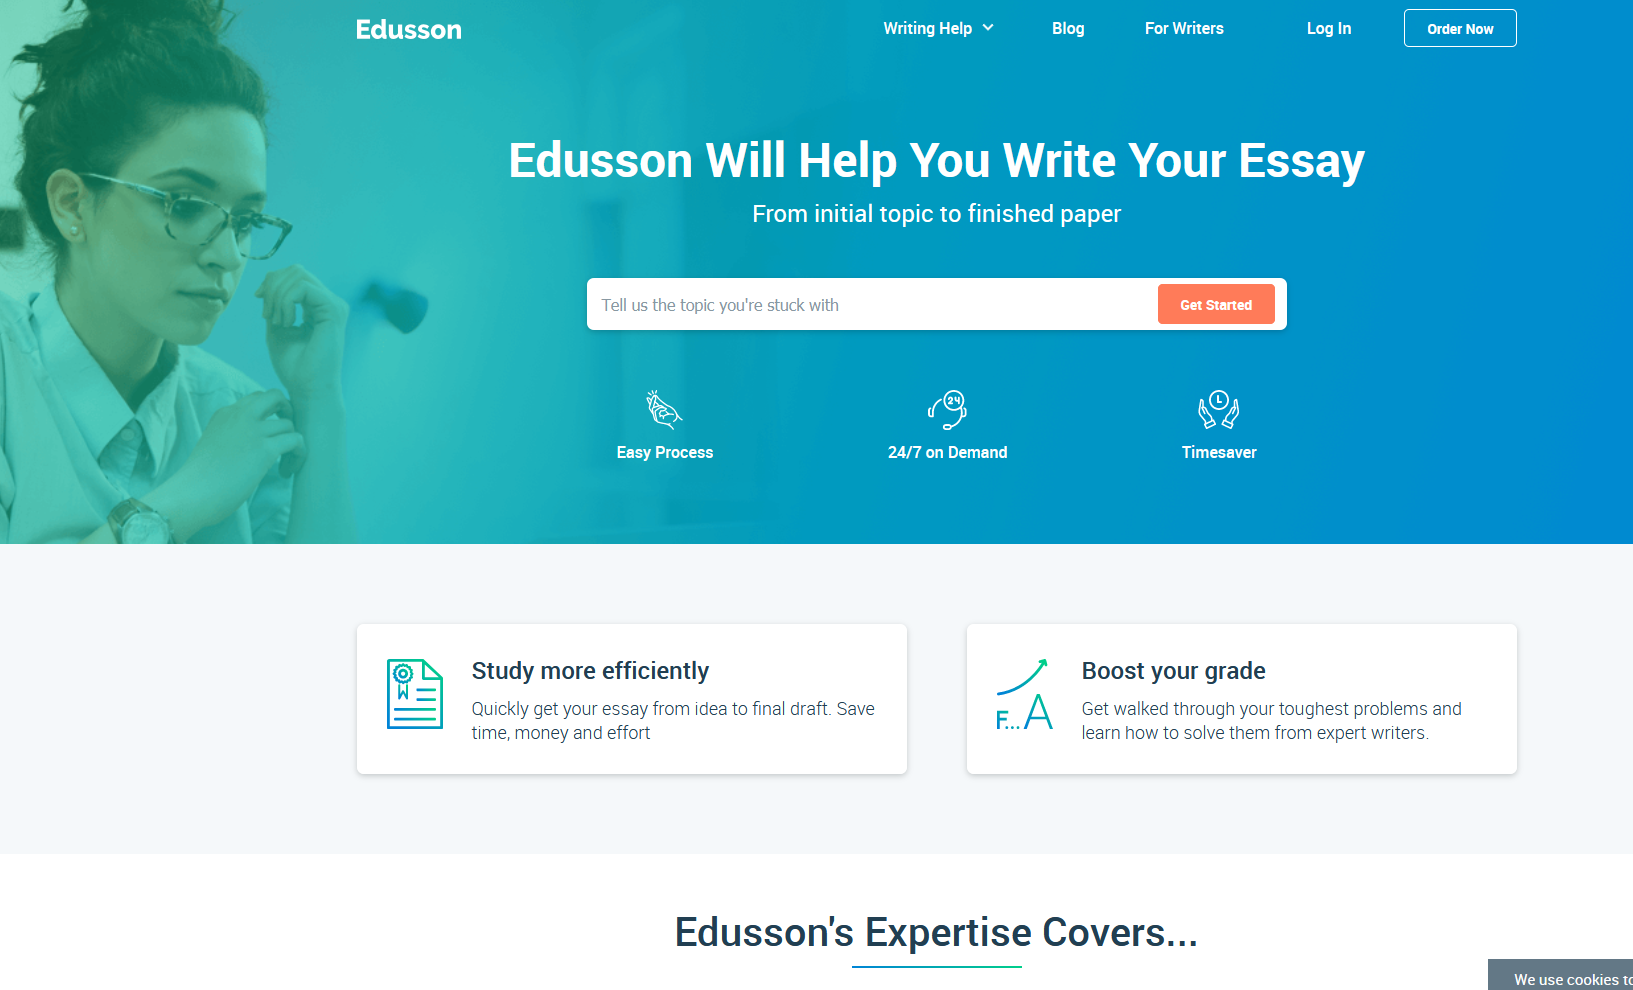 edusson.com overview